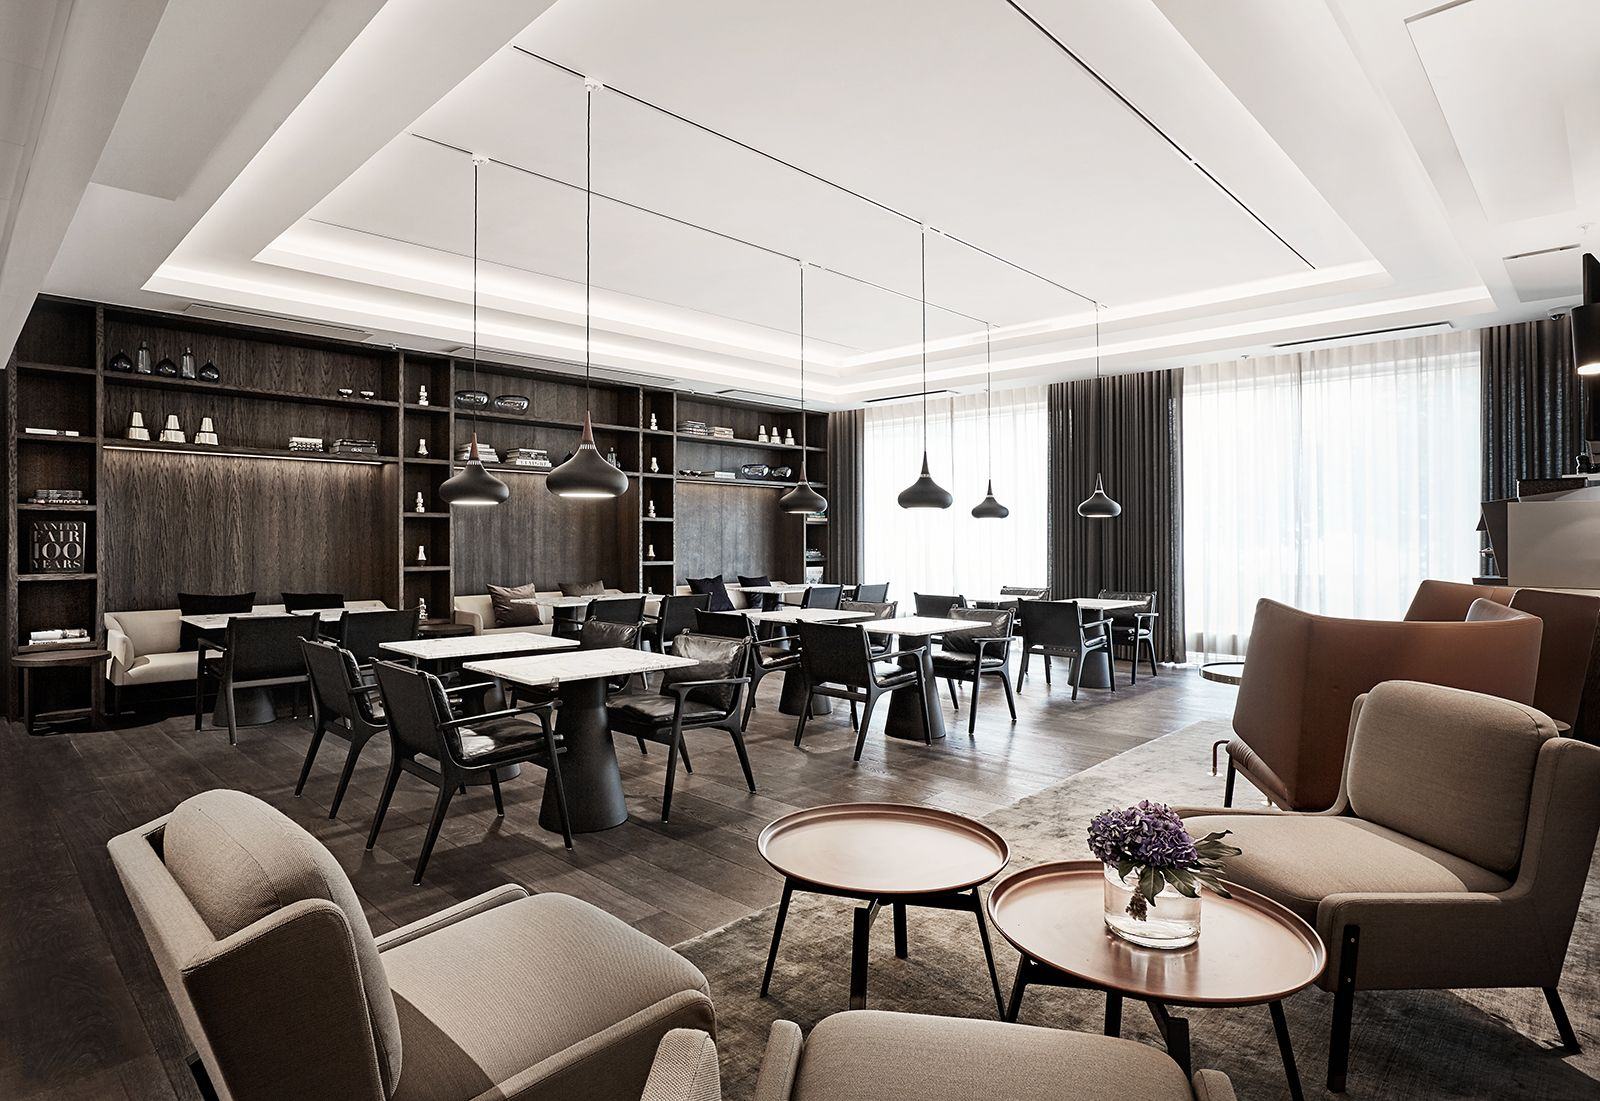 marriott copenhagen executive lounge interior design by helle flou restaurant inspiration. Black Bedroom Furniture Sets. Home Design Ideas